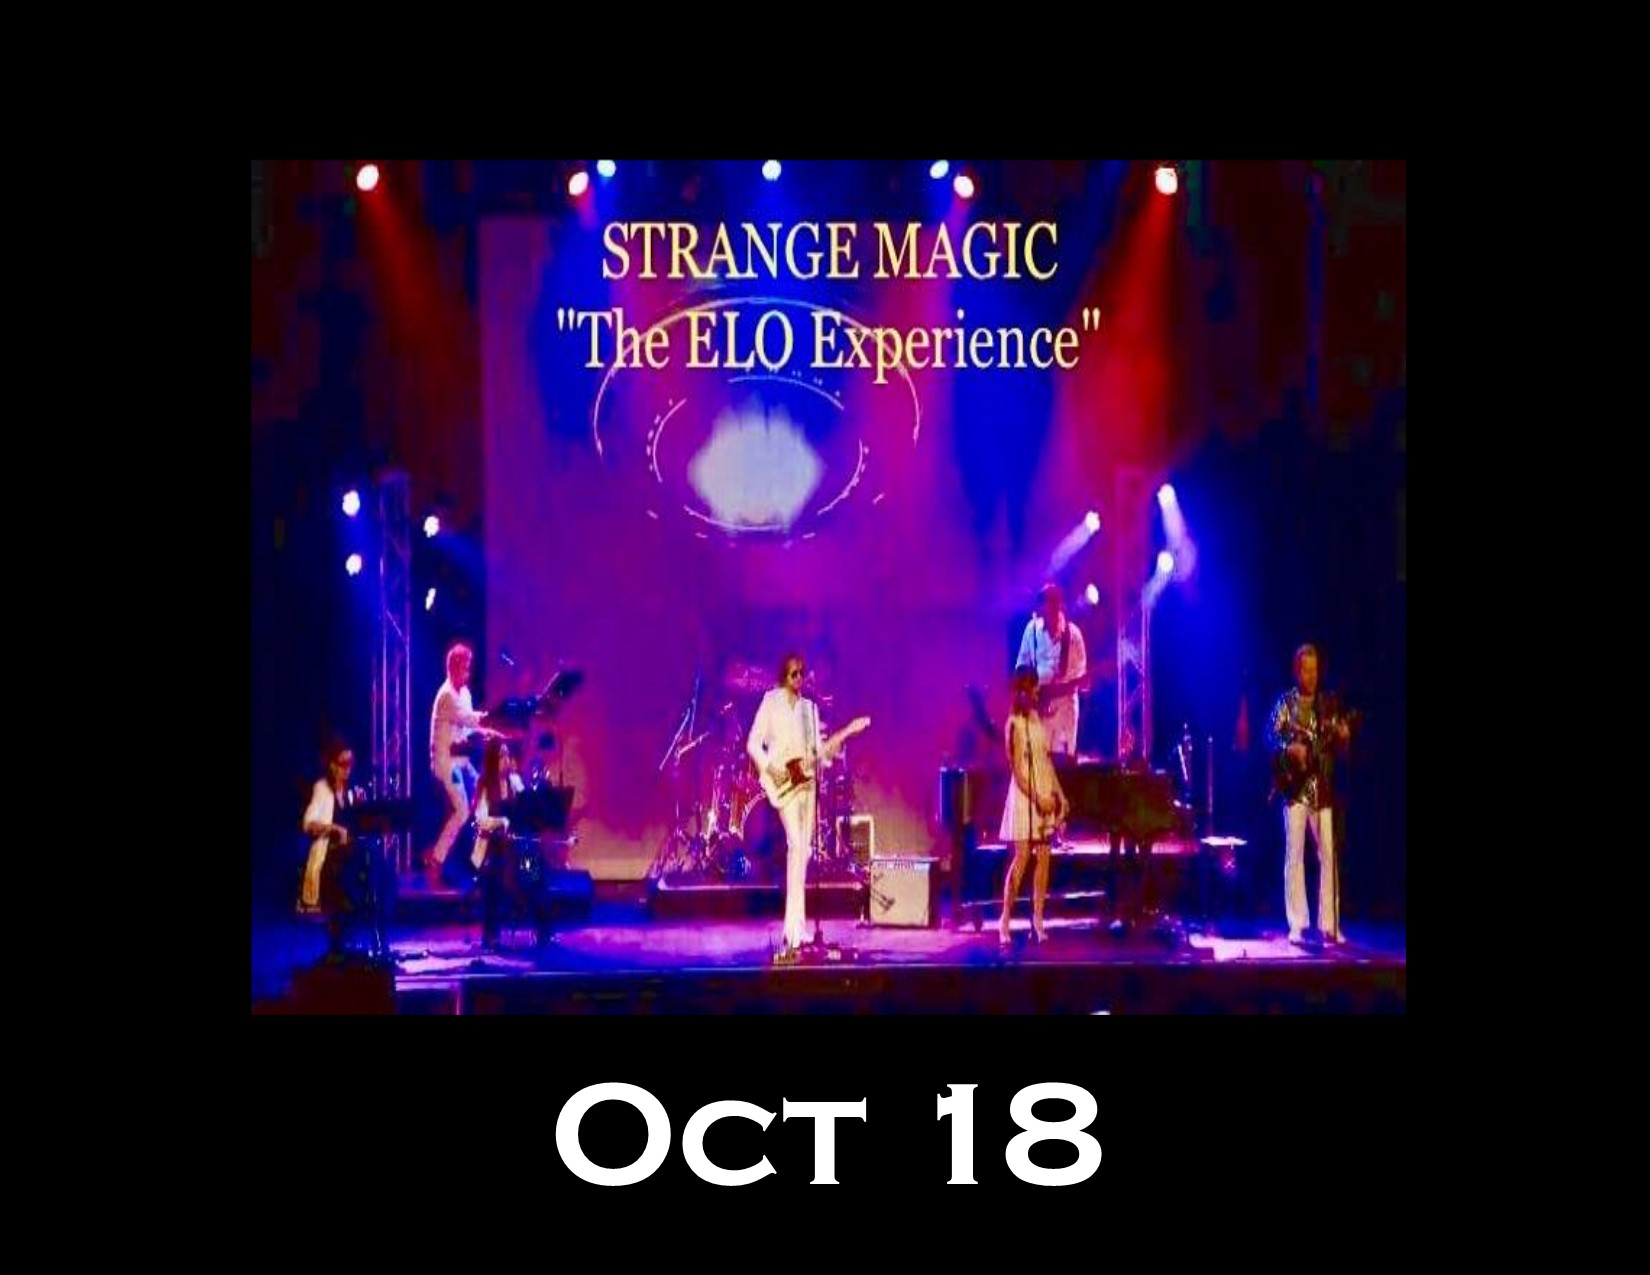 Strange Magic - The ELO Experience